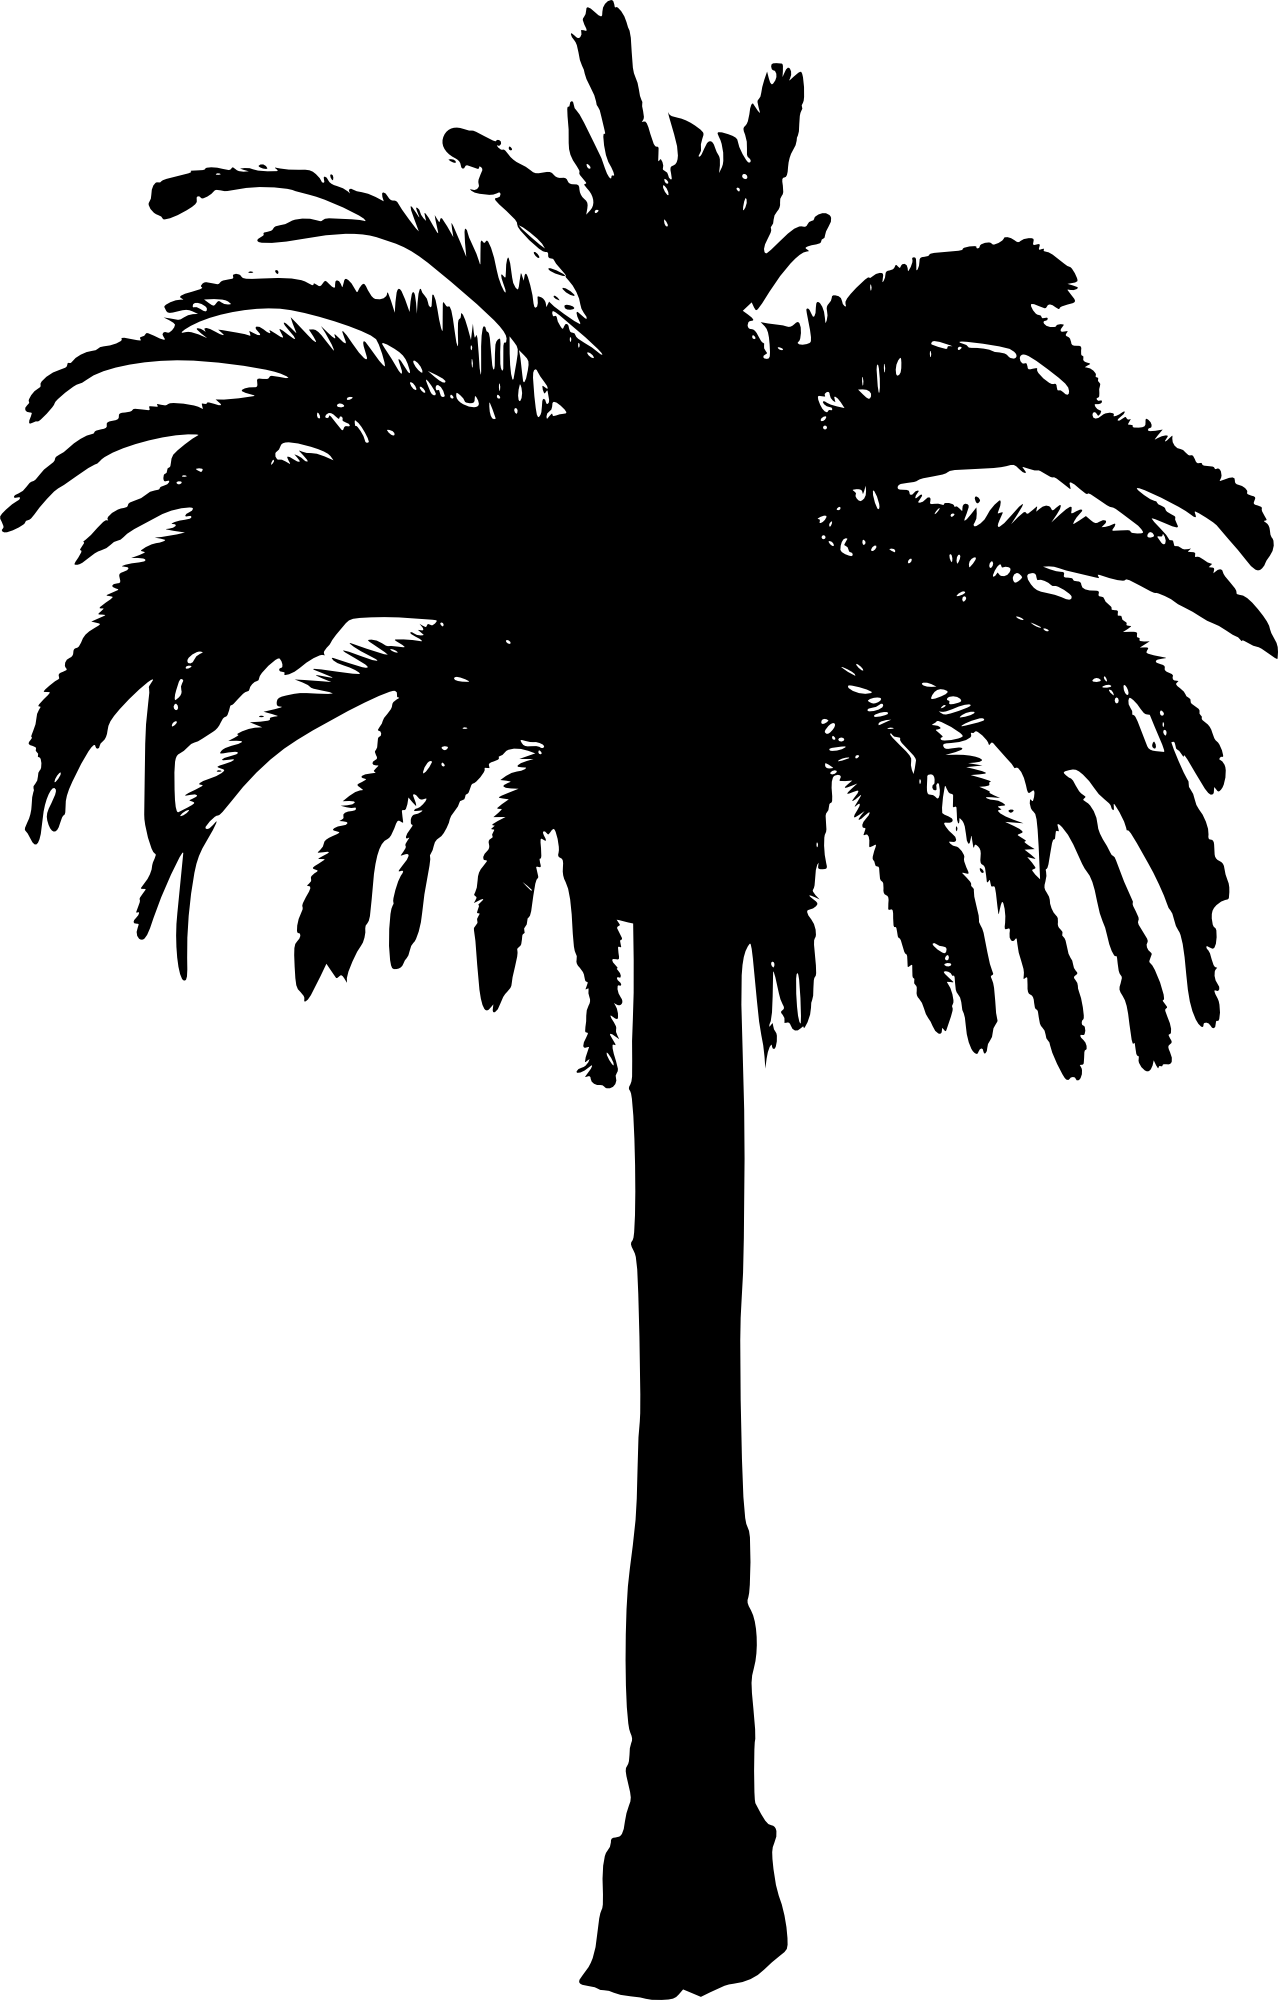 How To Paint A Palm Tree Silhouette